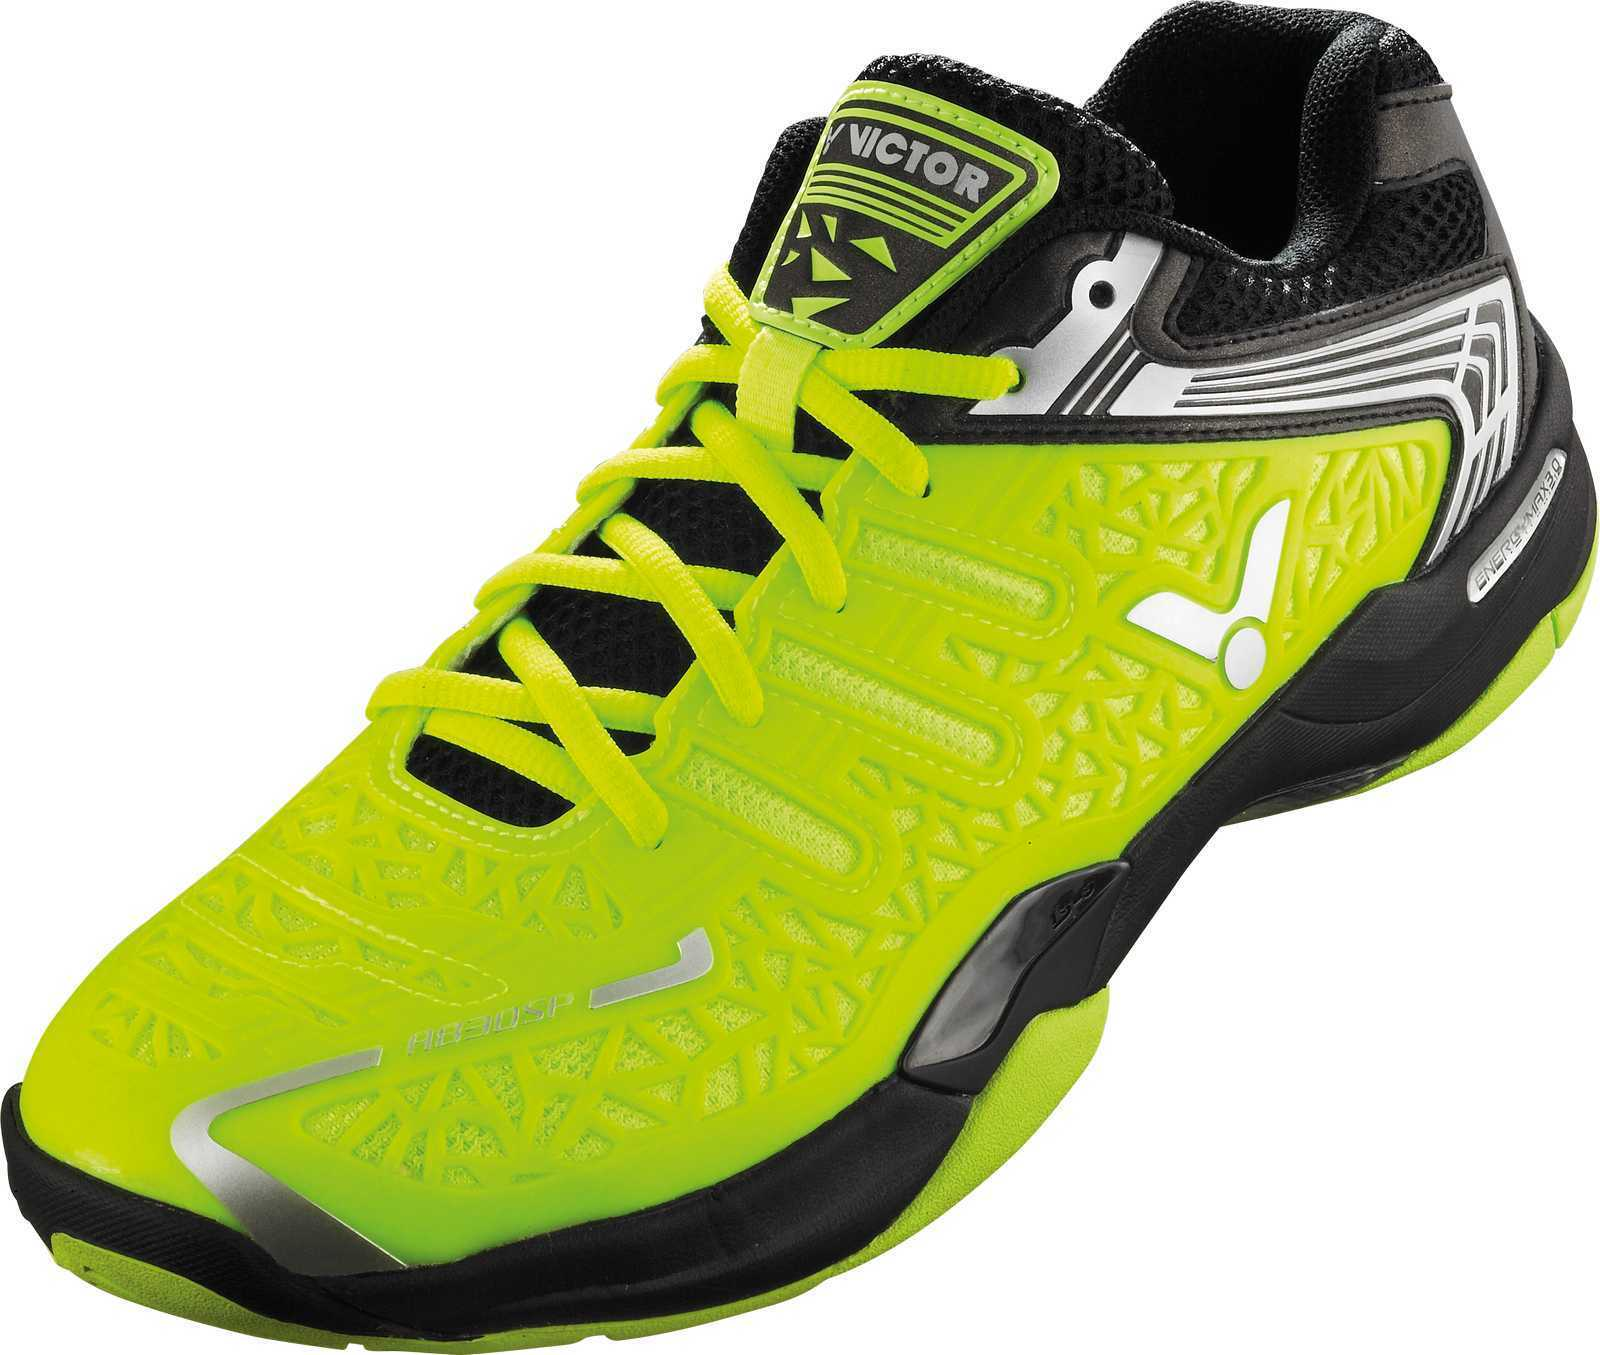 Victor shoes SH-A830 LTD  Badminton shoes